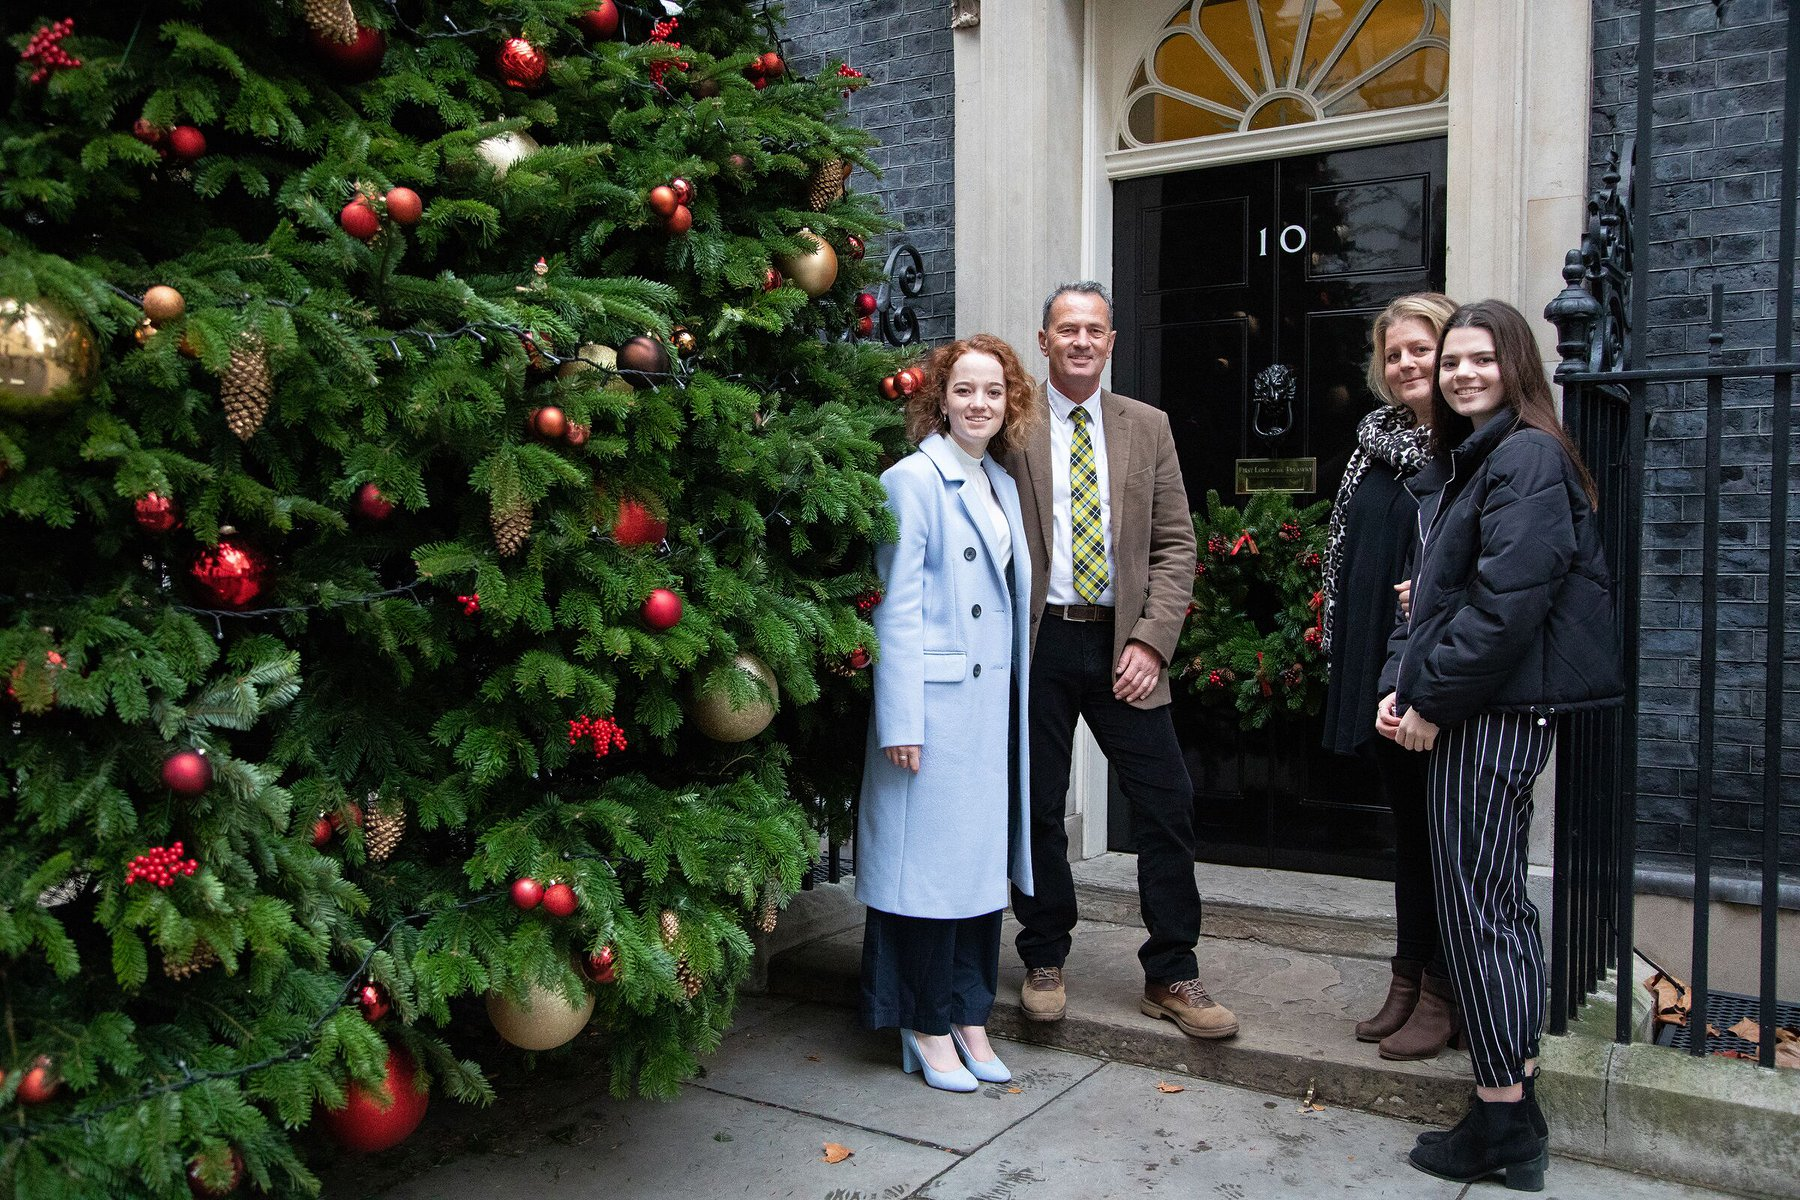 Cornwall Christmas Trees at Downing Street